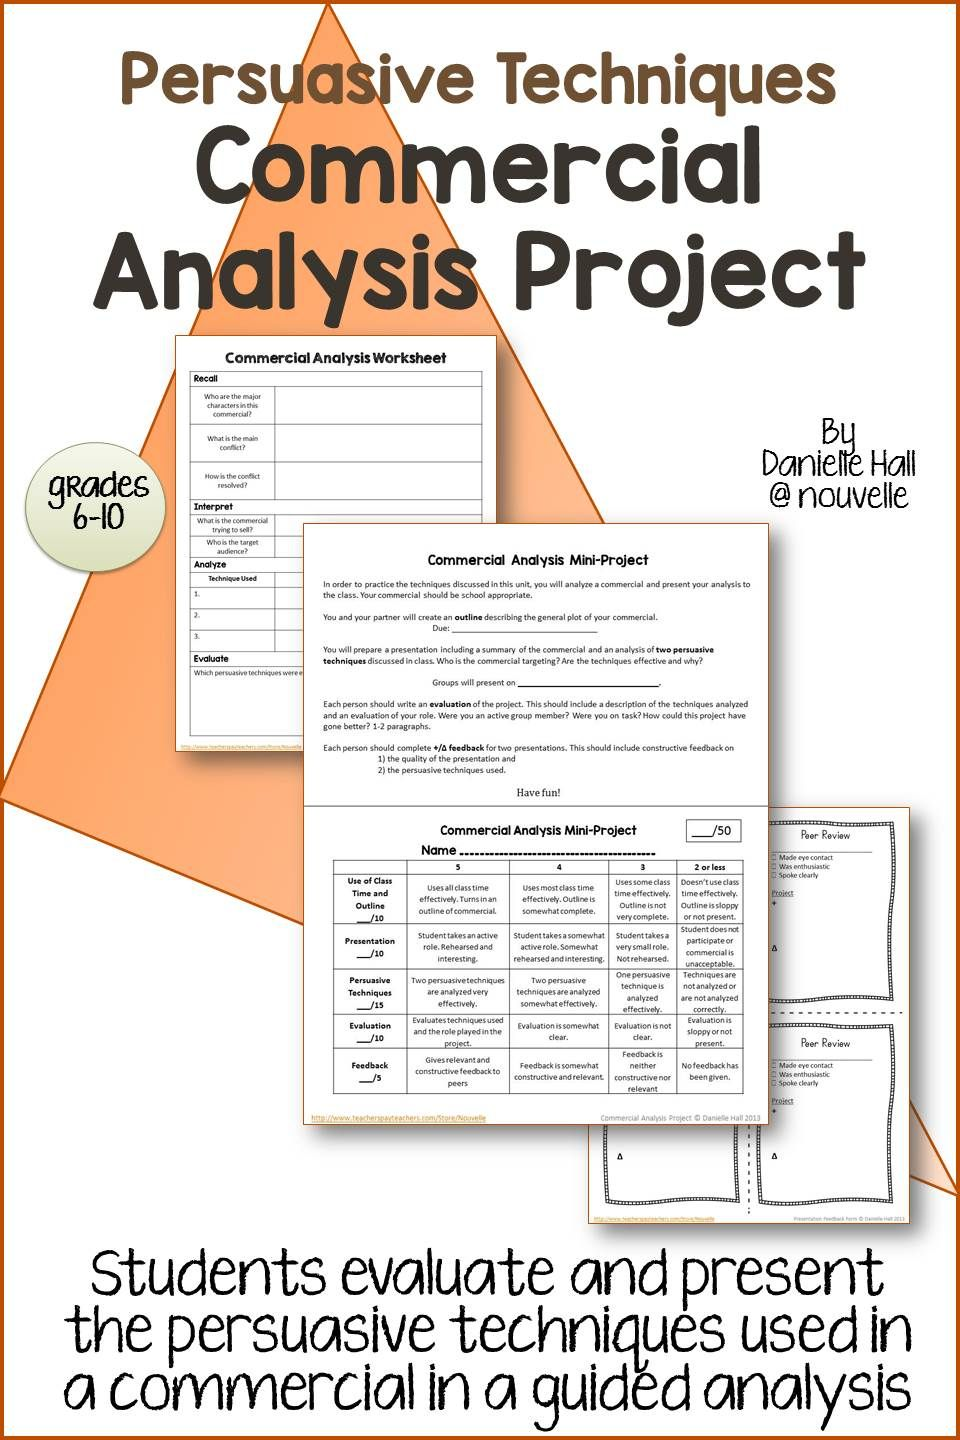 worksheet Persuasive Techniques Worksheet persuasive techniques commercial analysis project what project